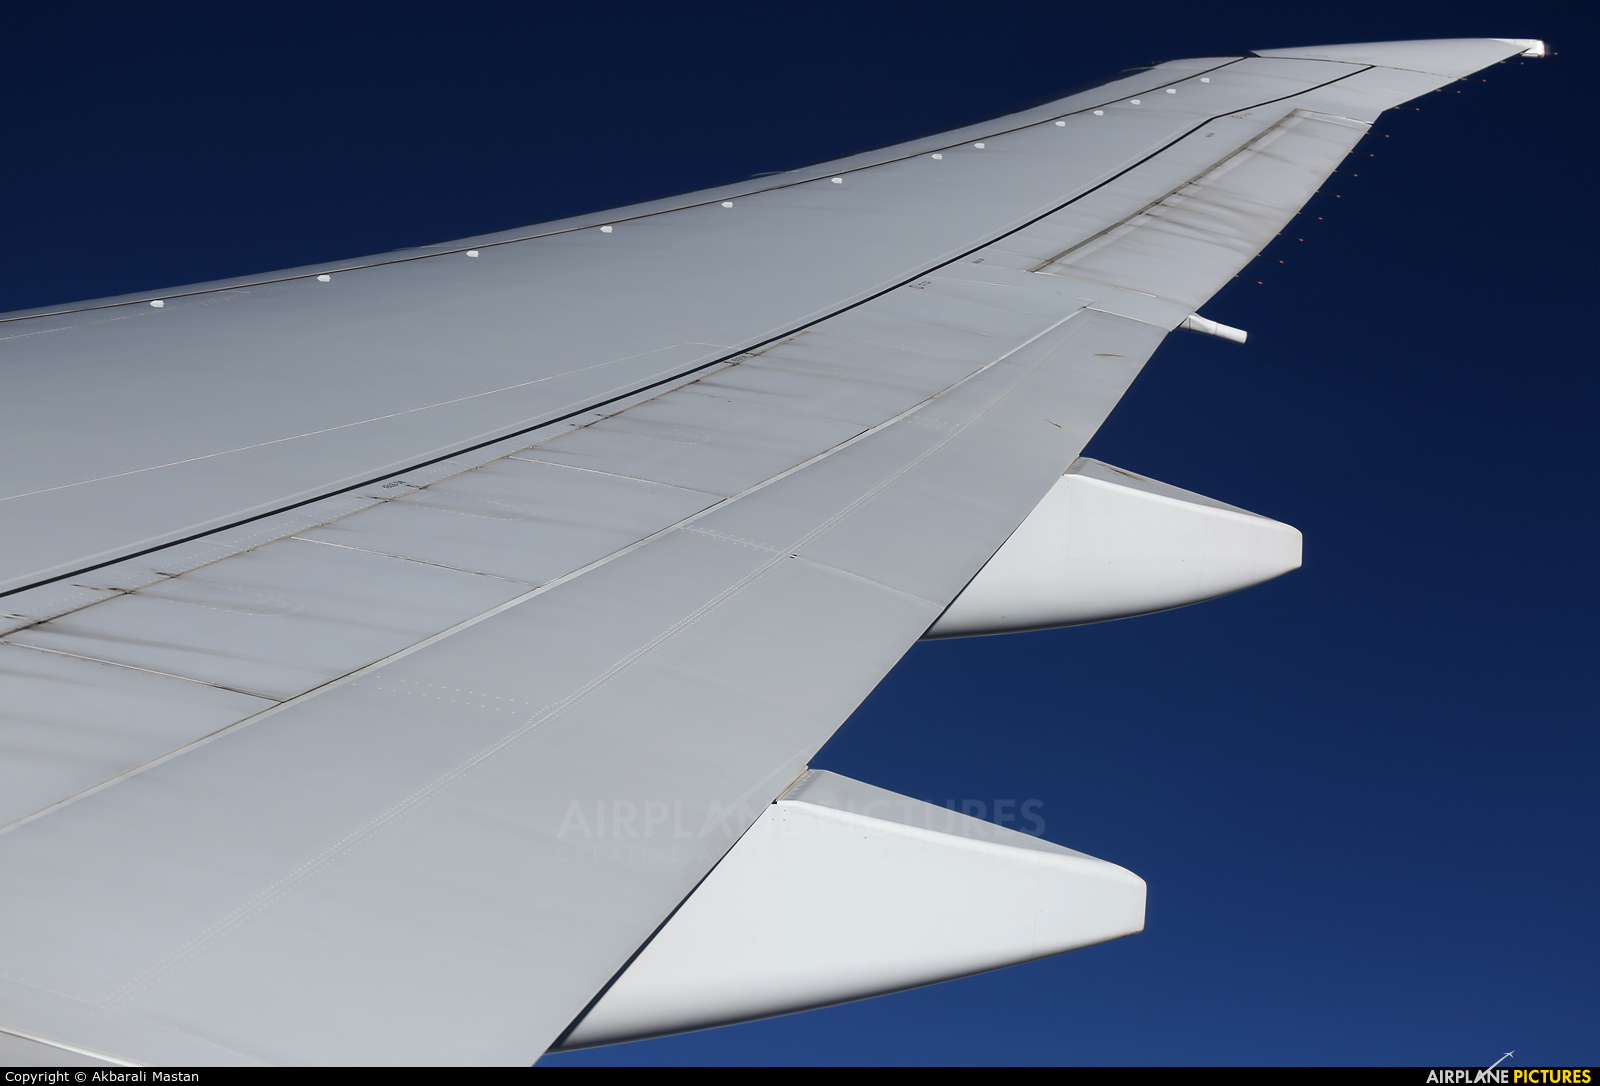 Emirates Airlines A6-ENG aircraft at In Flight - UAE